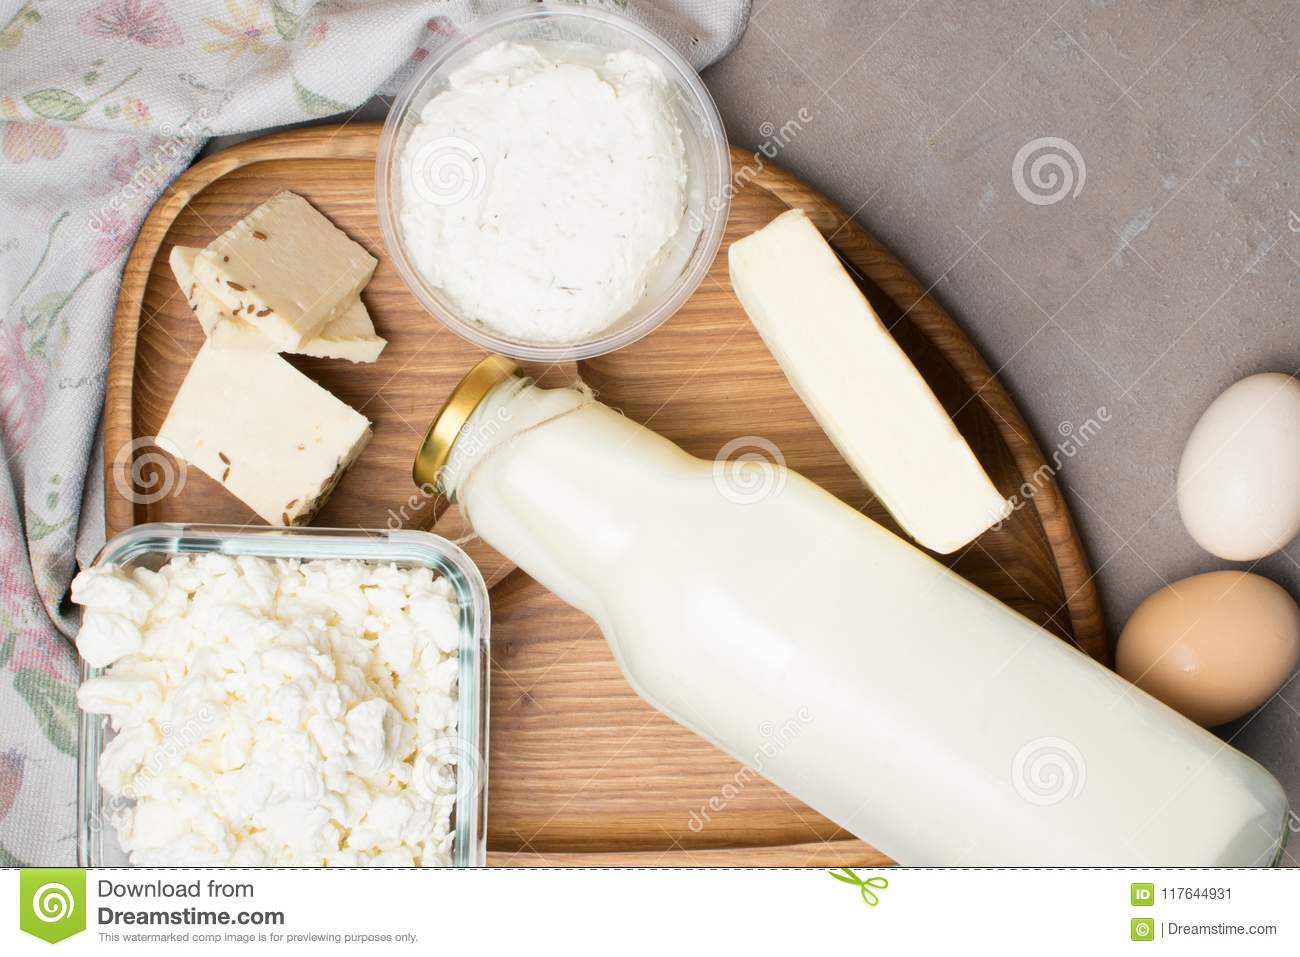 various dairy produkt on grey table with flower towel. Calcium source